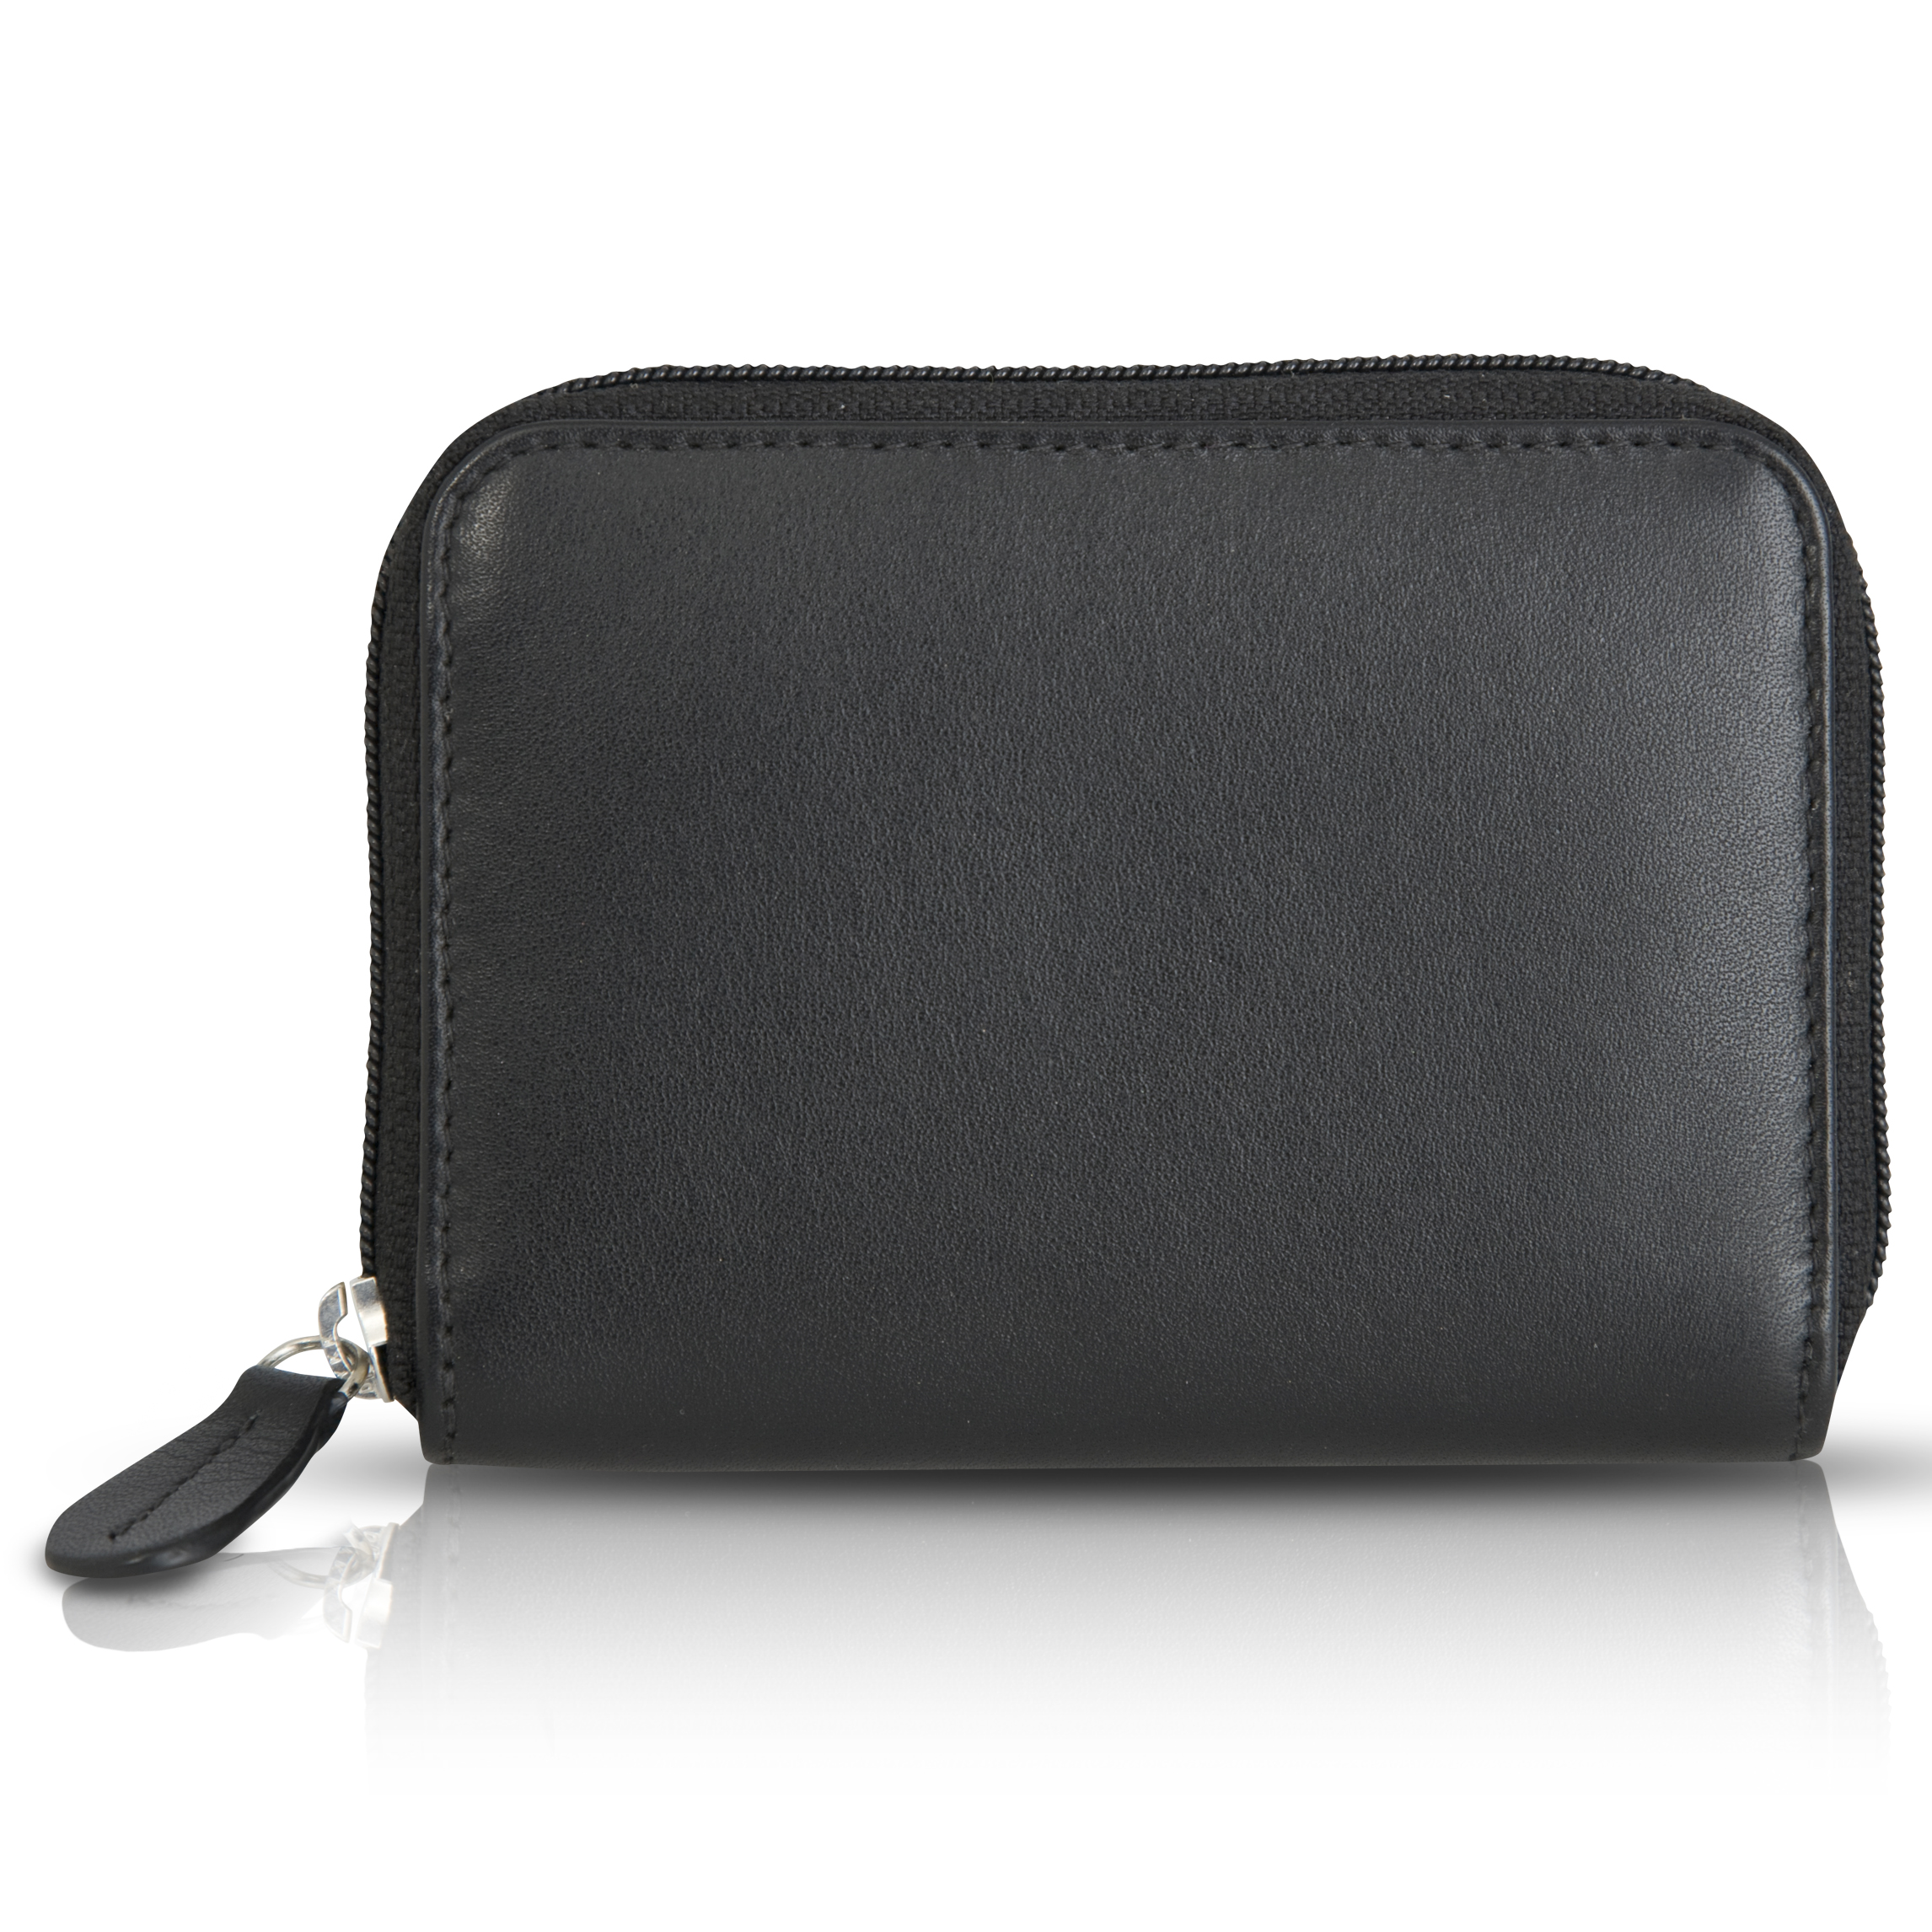 Wimbledon Leather Purse - Black